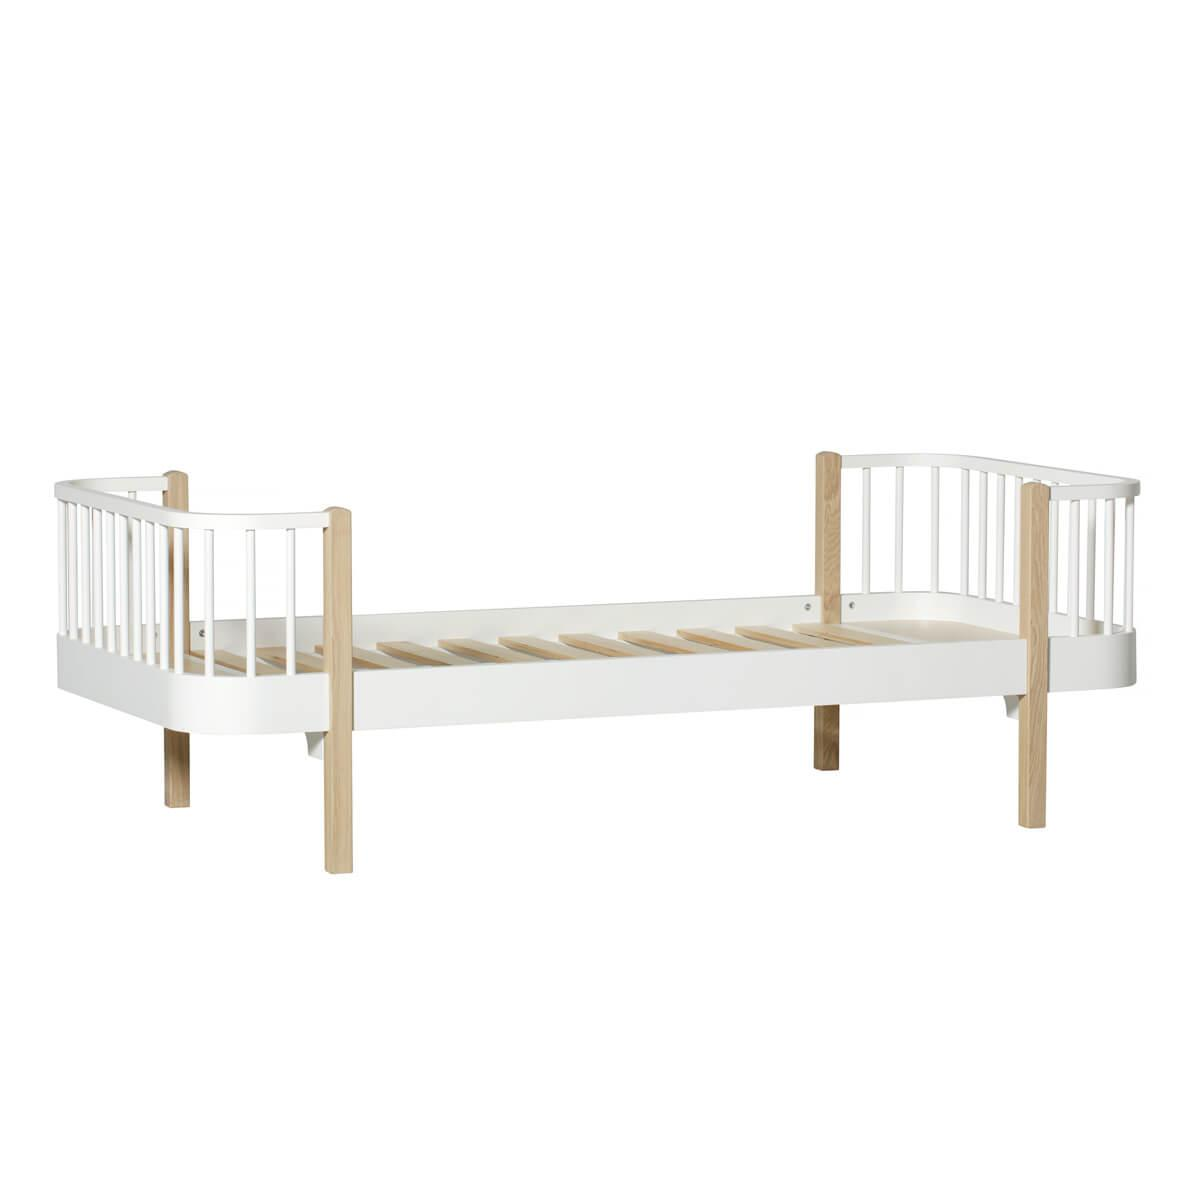 Cama individual evolutiva 90x200cm WOOD ORIGINAL Oliver Furniture blanco-roble